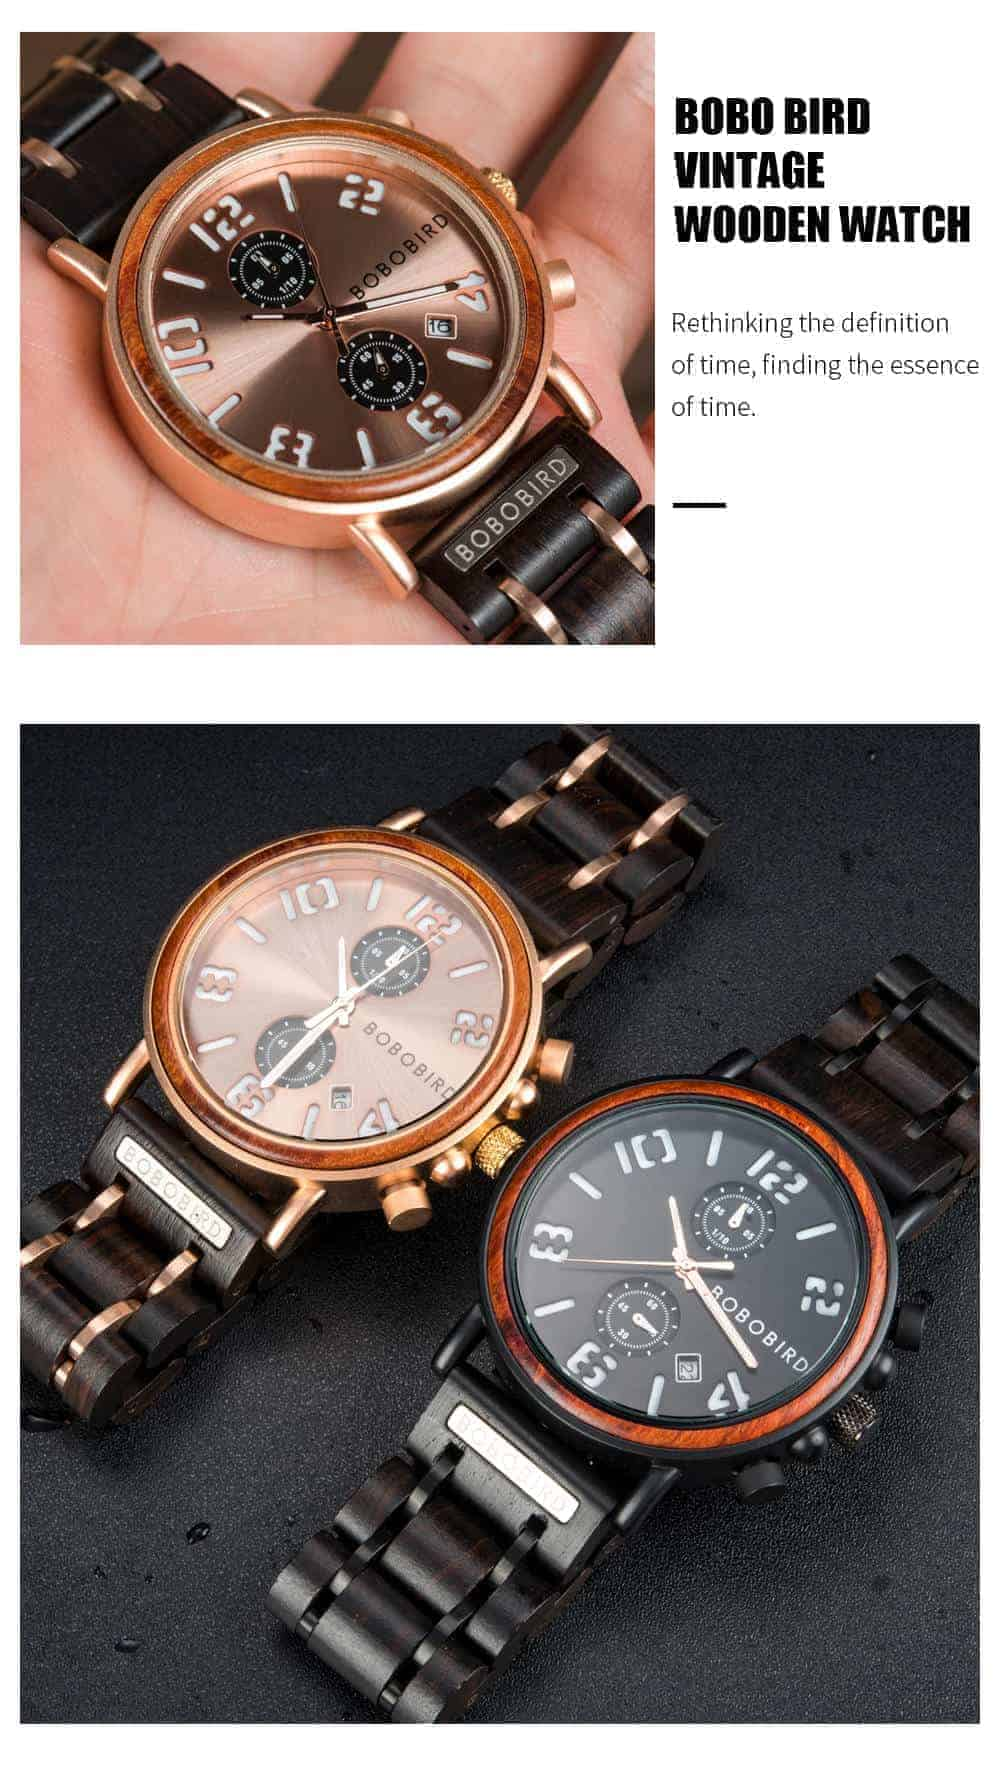 BOBO BIRD Wooden Watches S26 Series Product Details 5